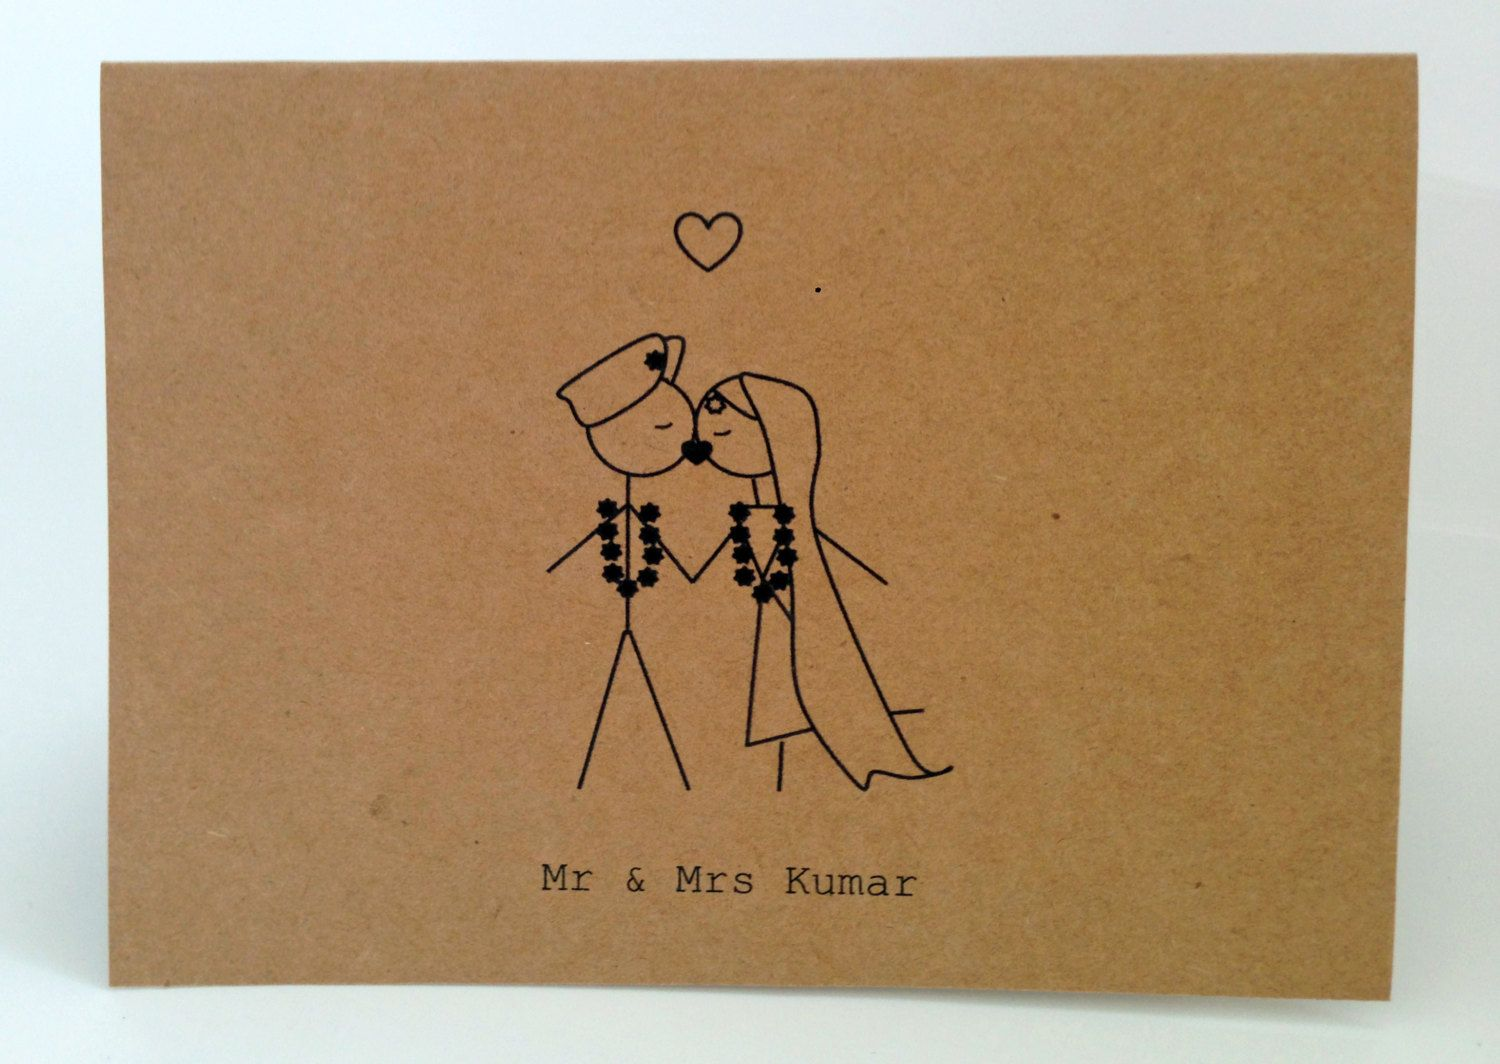 20 Customised Traditional Indian Wedding Engagement Thank You Cards Invitations Kissing Mr Mrs Stick Figures Printed 21 00 Via Etsy